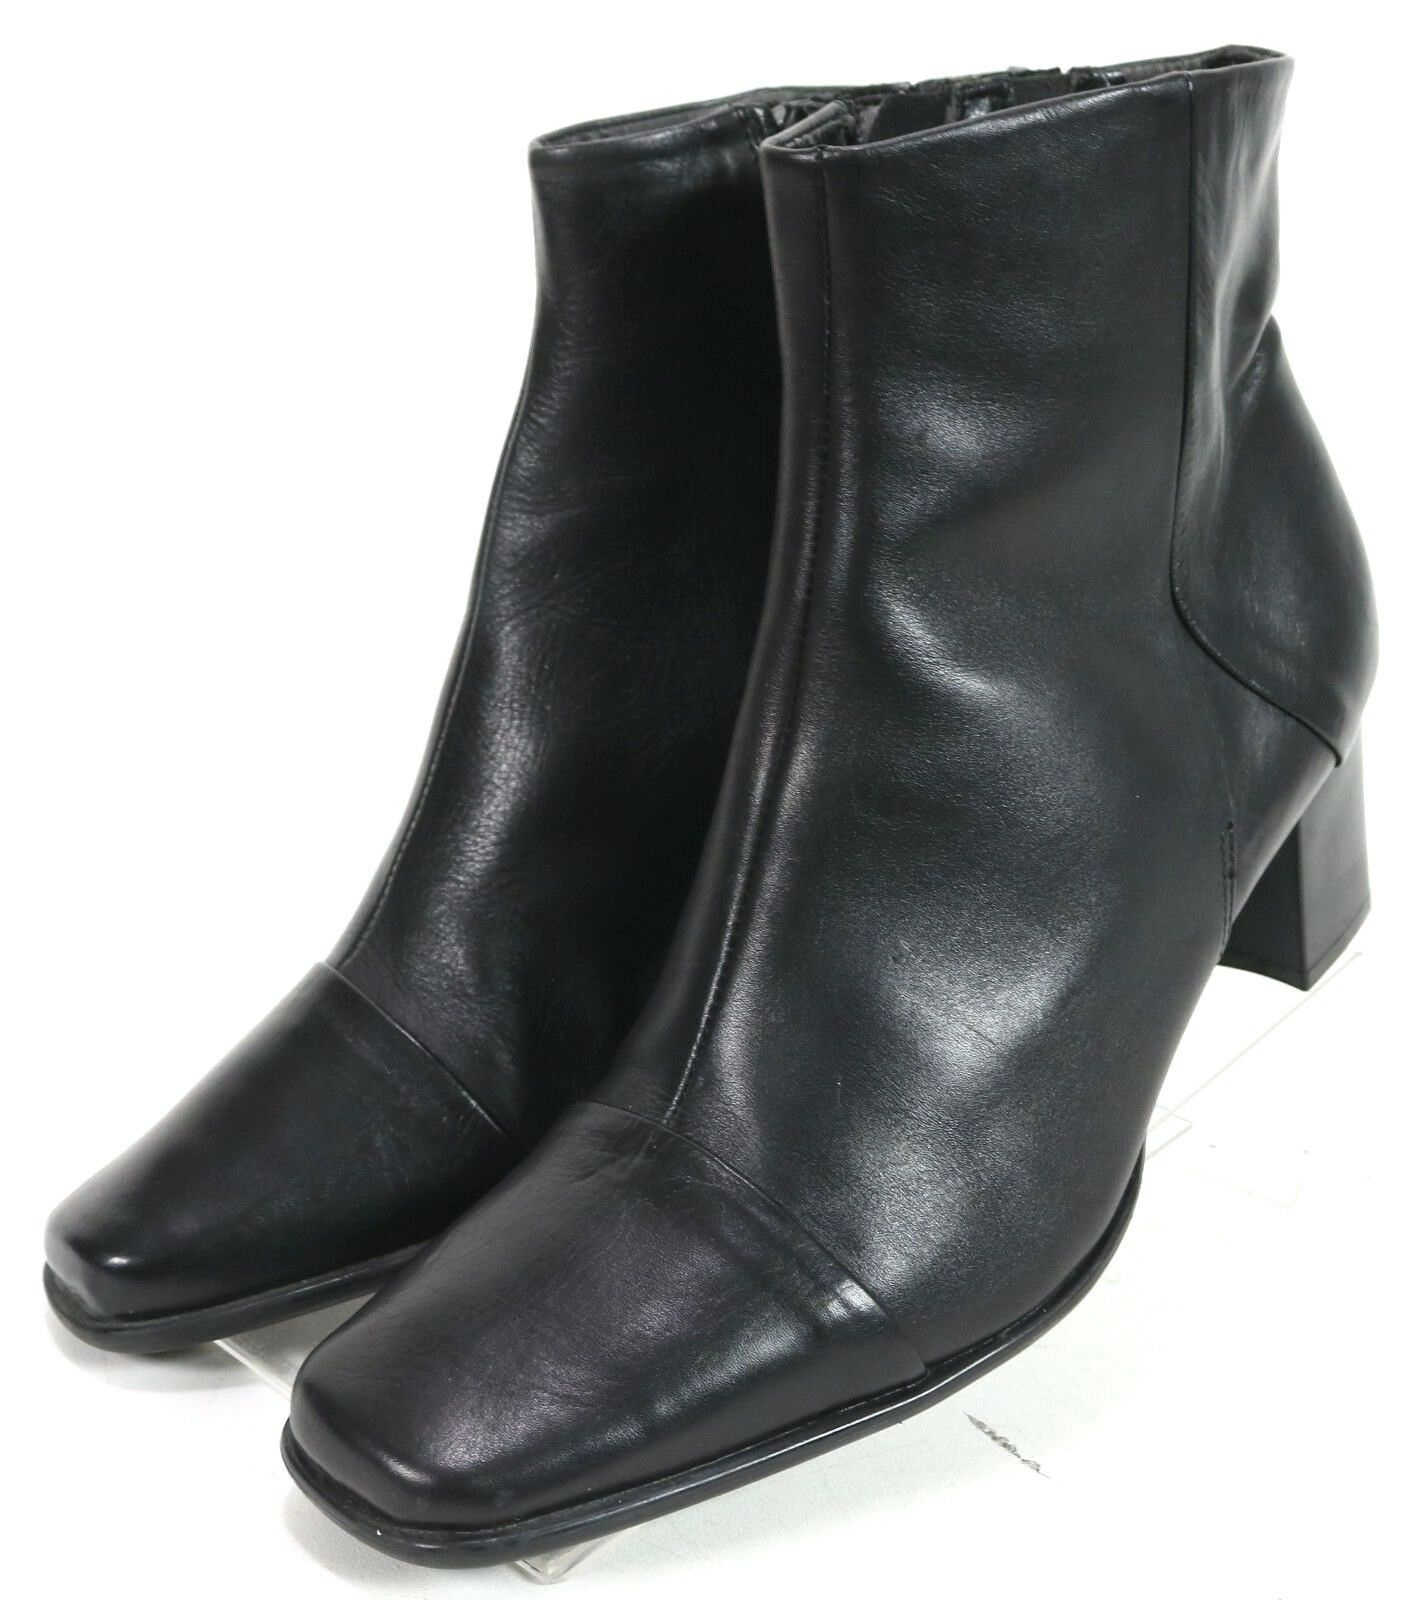 Clarks  90 Women's Ankle Boots Size 8.5 Side Zip Leather Black